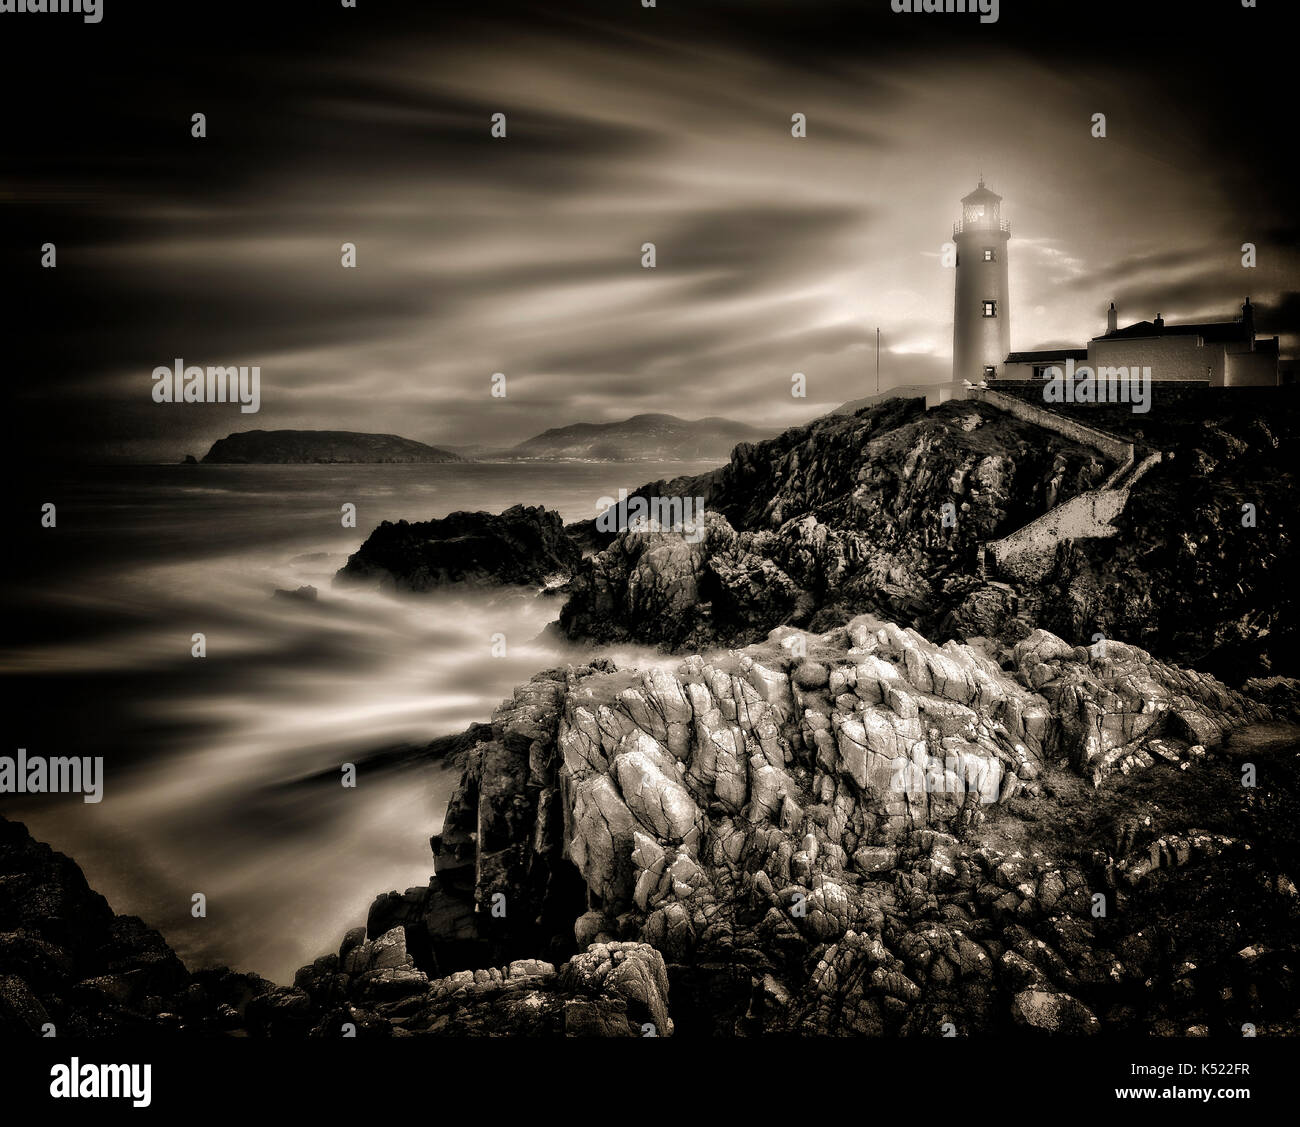 PHOTOGRAPHIC ART: Fanad Head Lighthouse Co. Donegal, Republic of Ireland - Stock Image